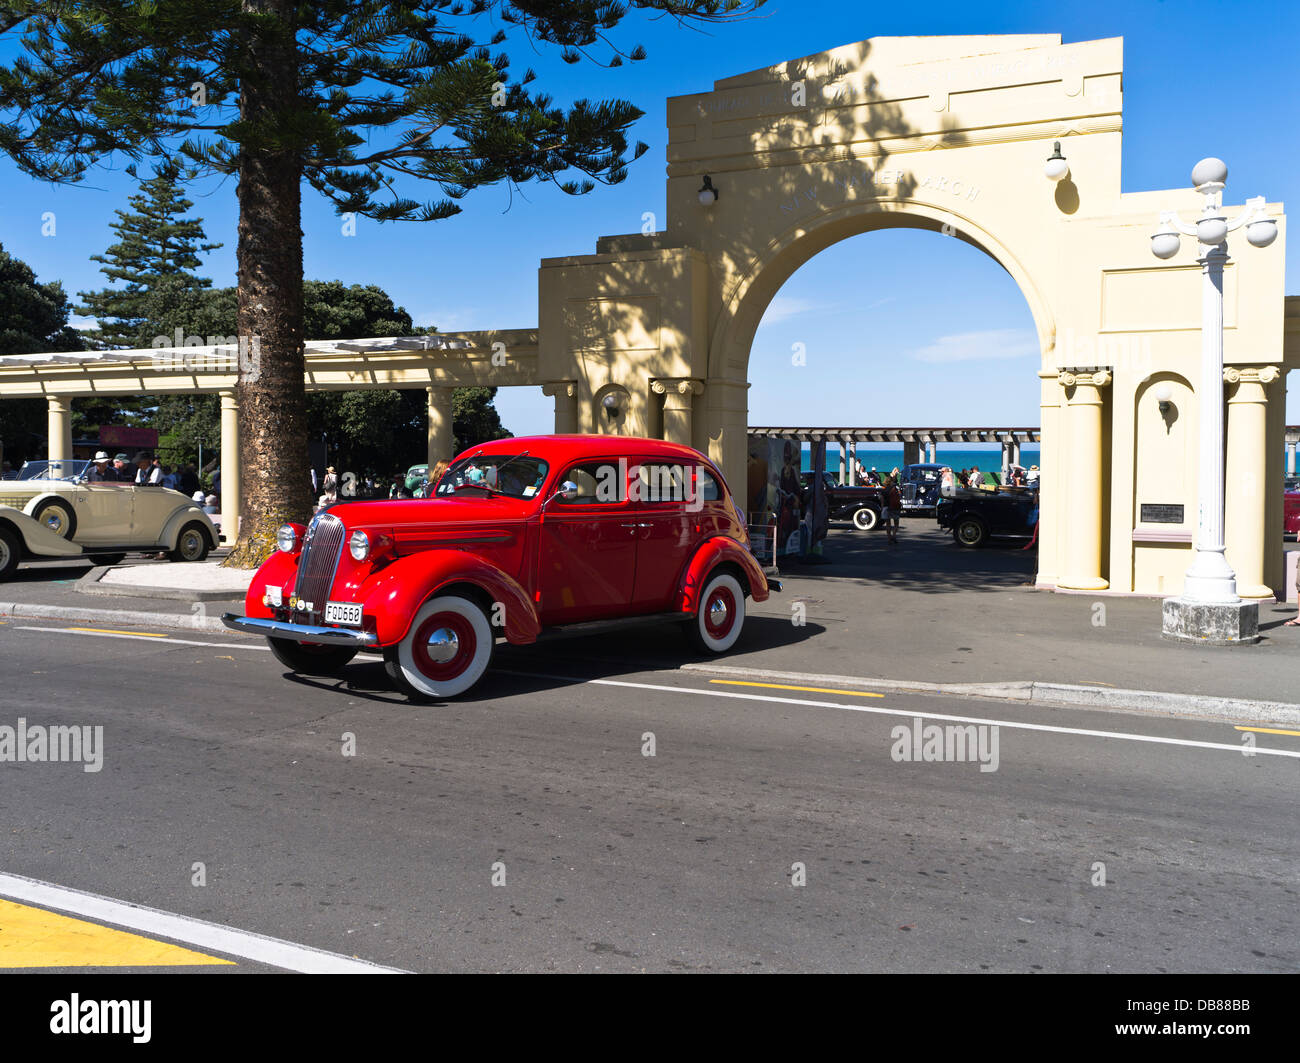 dh marine parade napier new zealand classic vintage car art deco stock photo 58574527 alamy. Black Bedroom Furniture Sets. Home Design Ideas